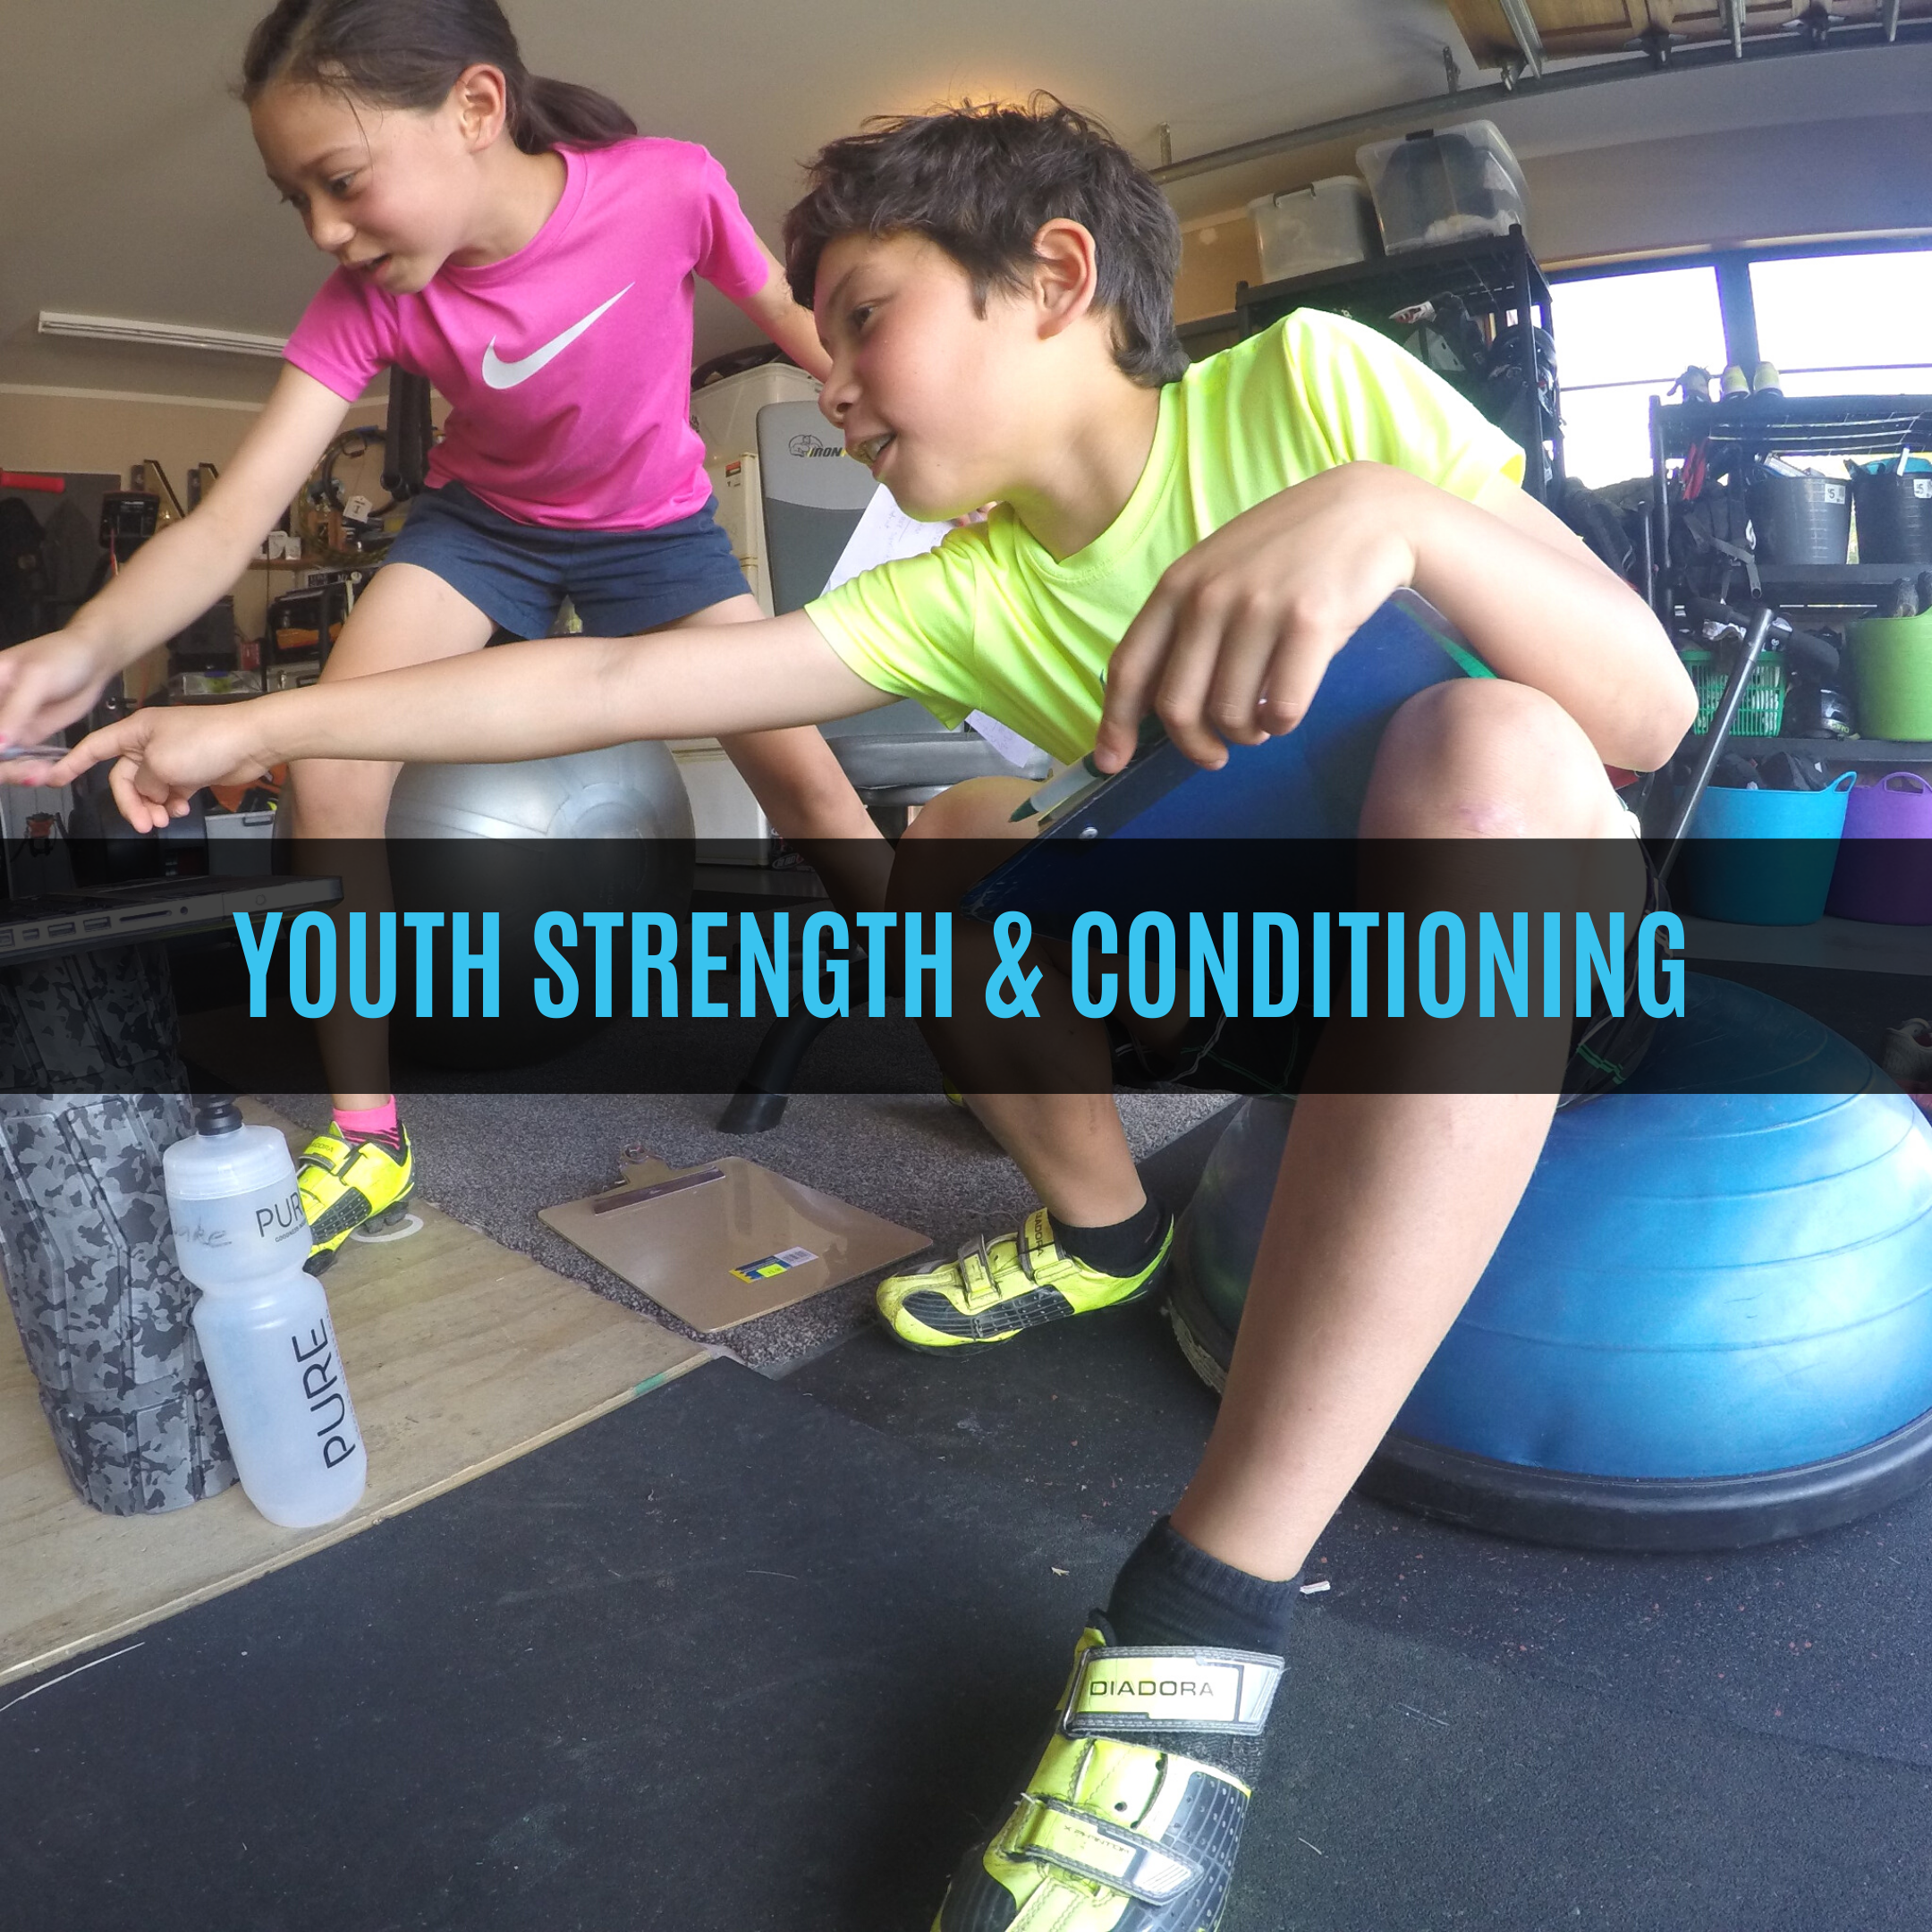 12 Week Youth Strength & Conditioning Program